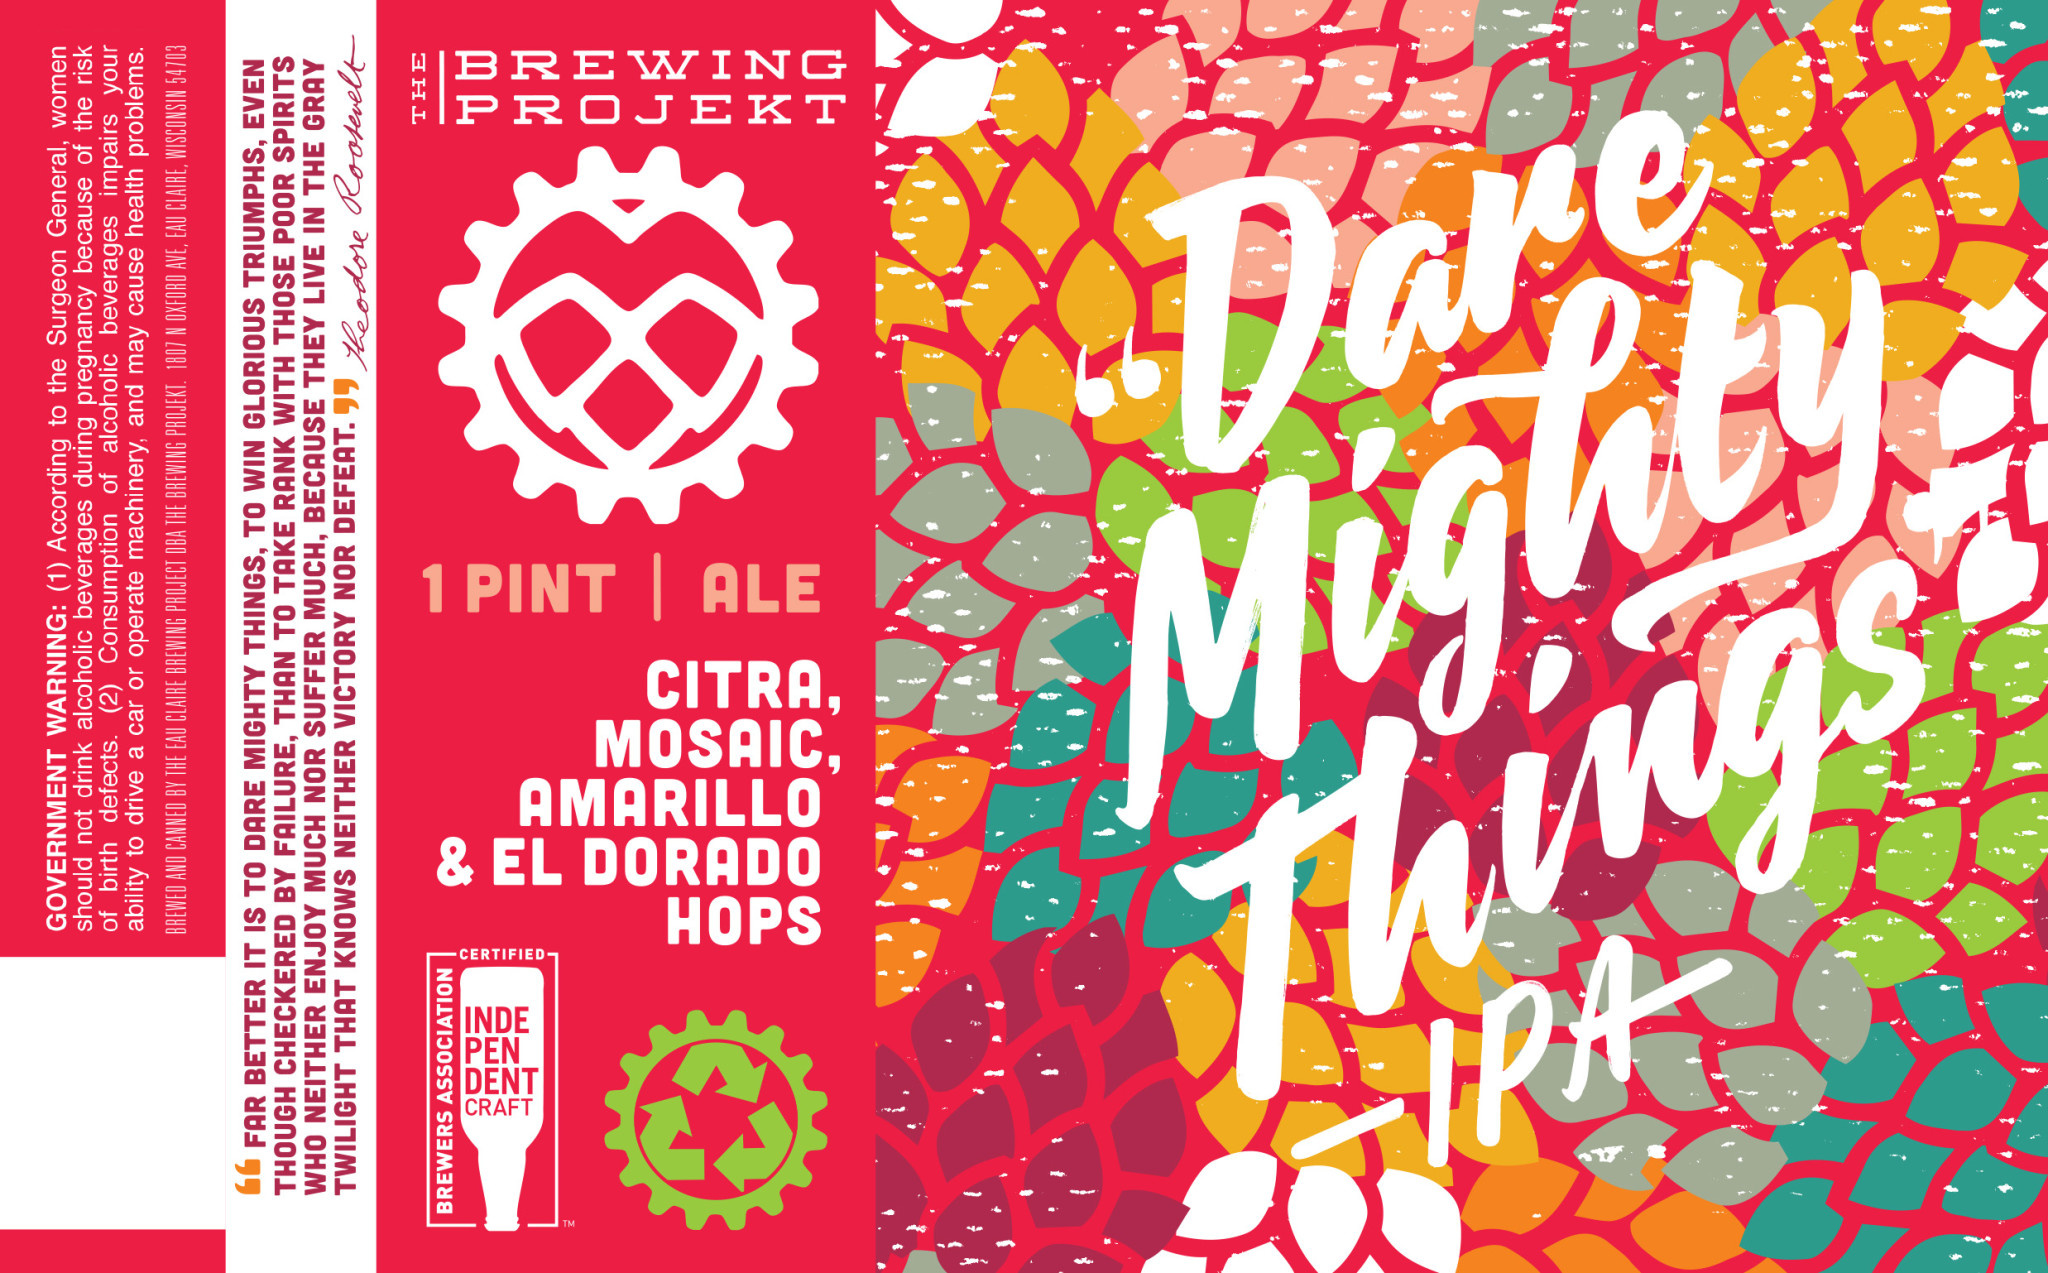 The Brewing Projekt THE BREWING PROJEKT DARE MIGHTY THINGS IPA 4 PK CANS